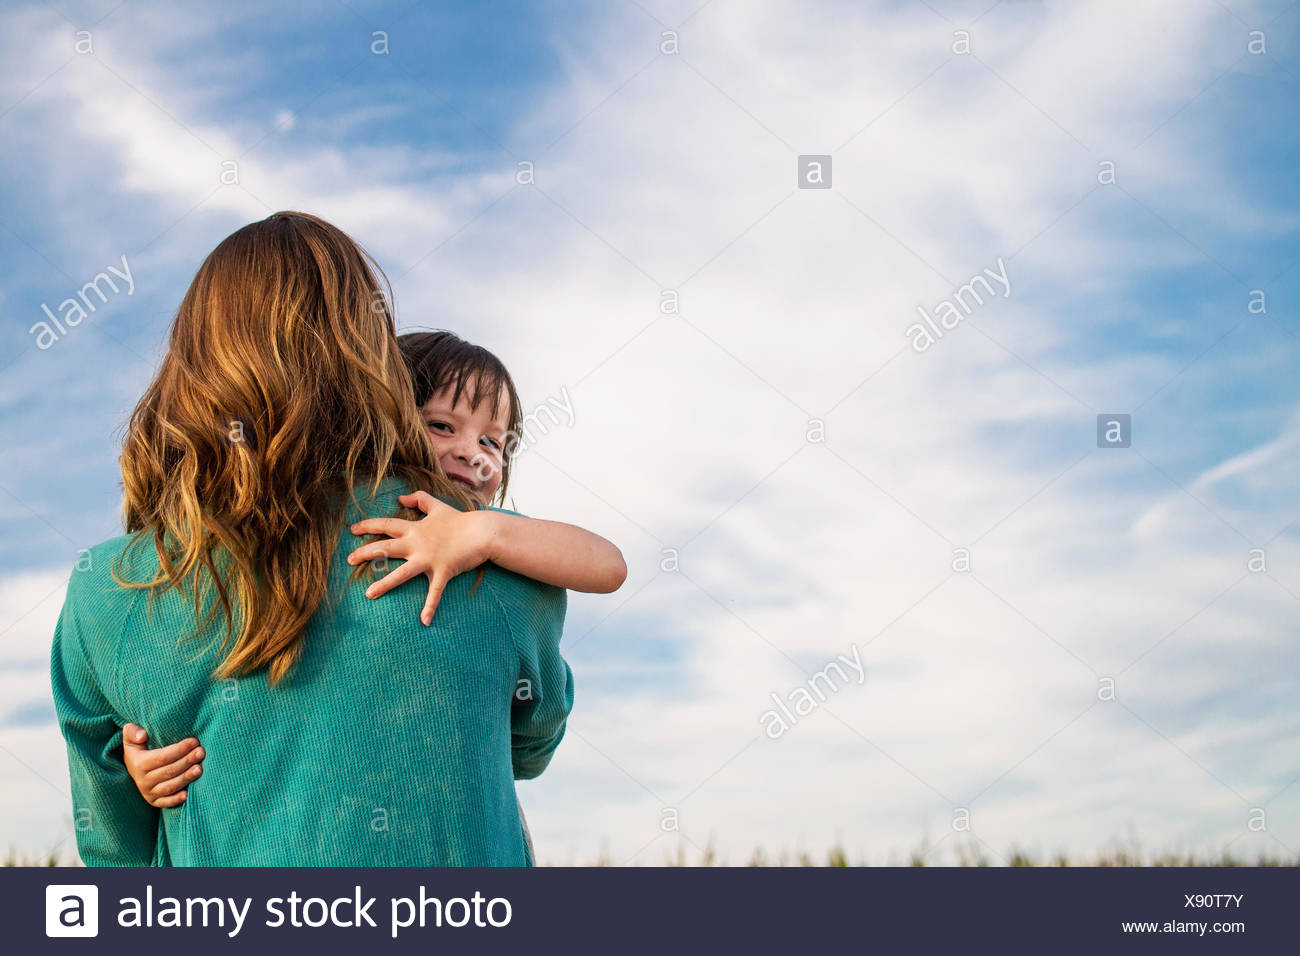 Mother carrying her daughter on her shoulder - Stock Image